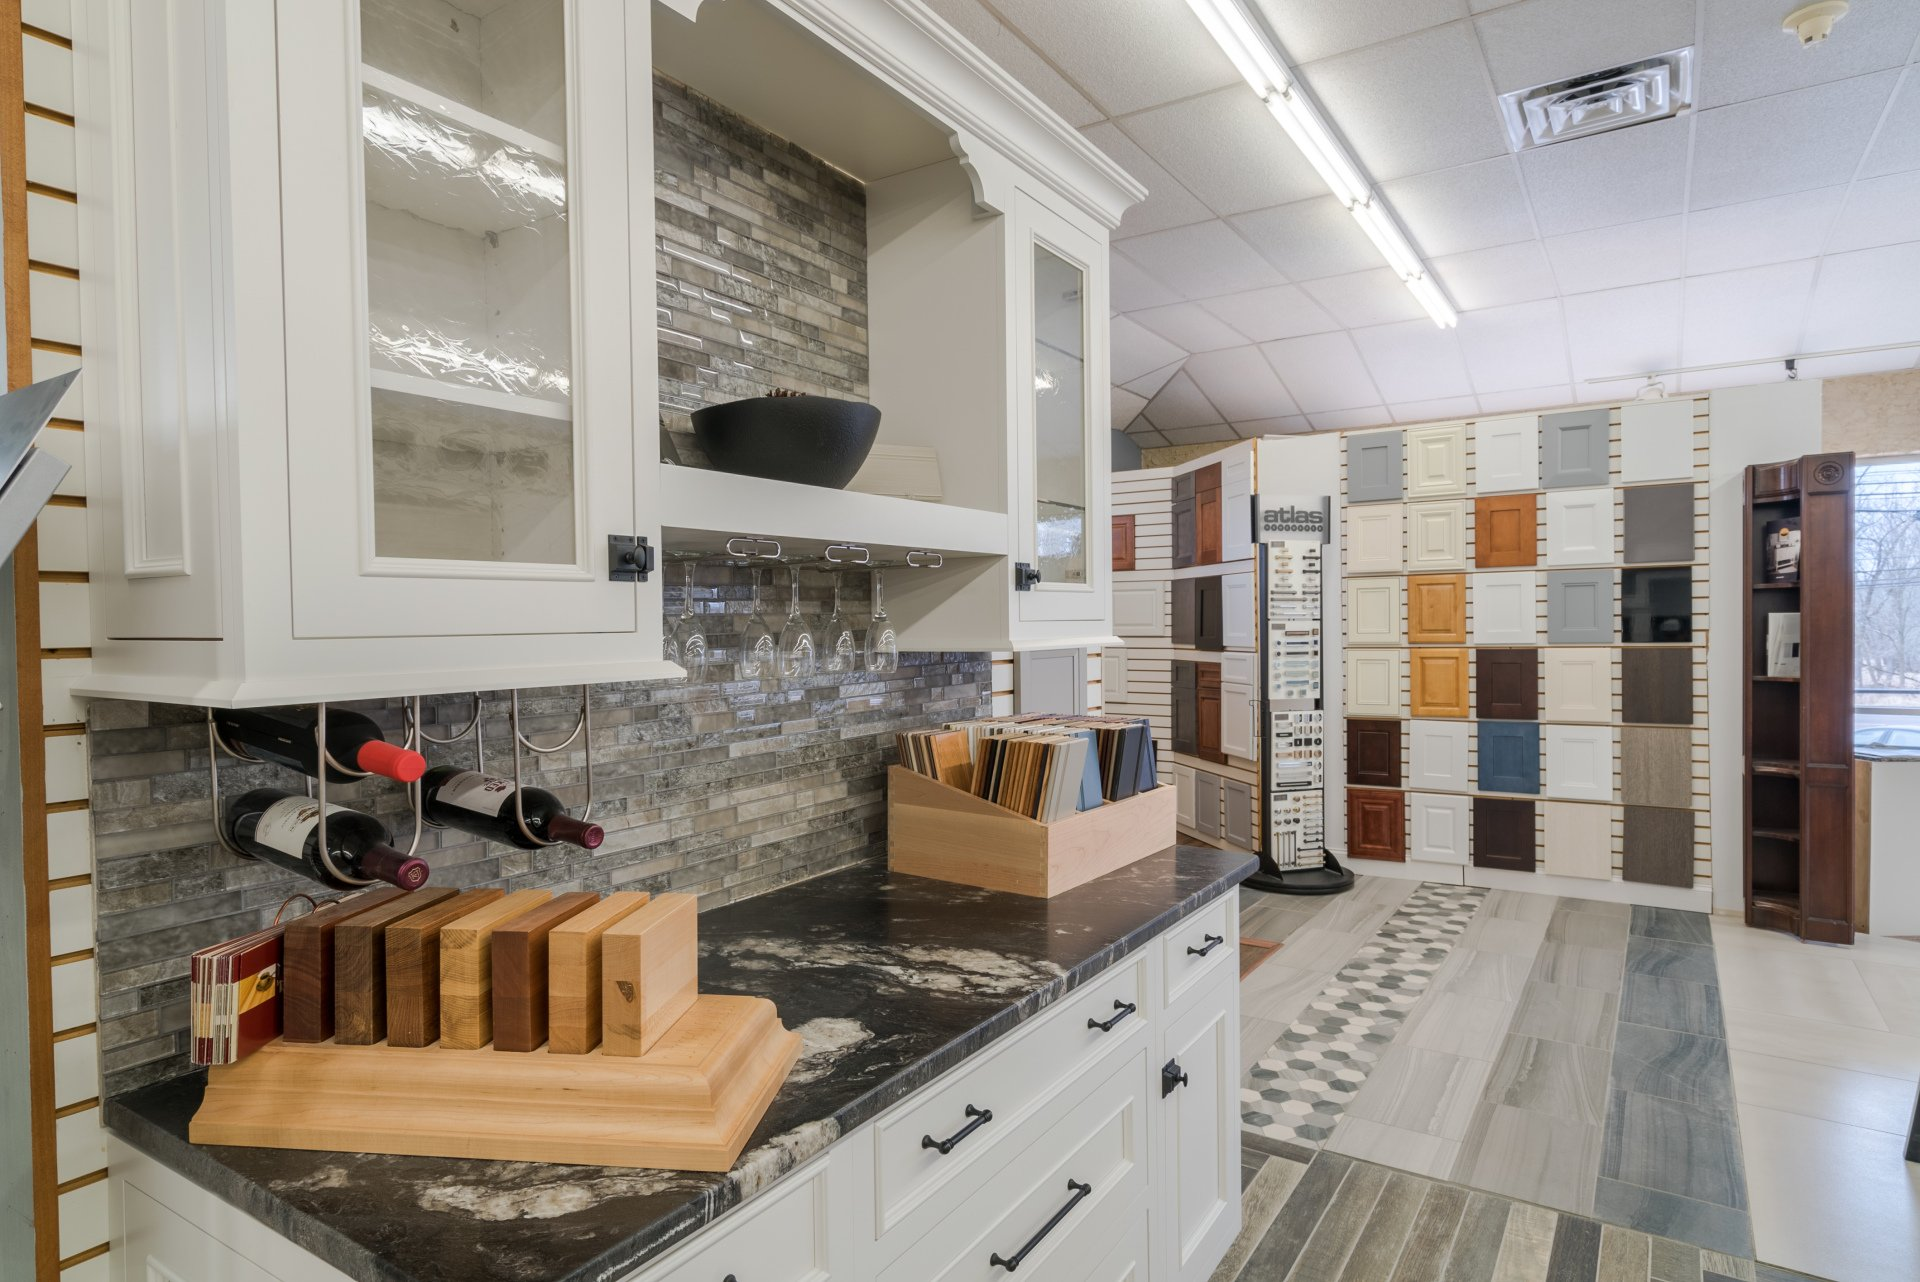 309 Home Design Remodeling Materials Hatfield Pa